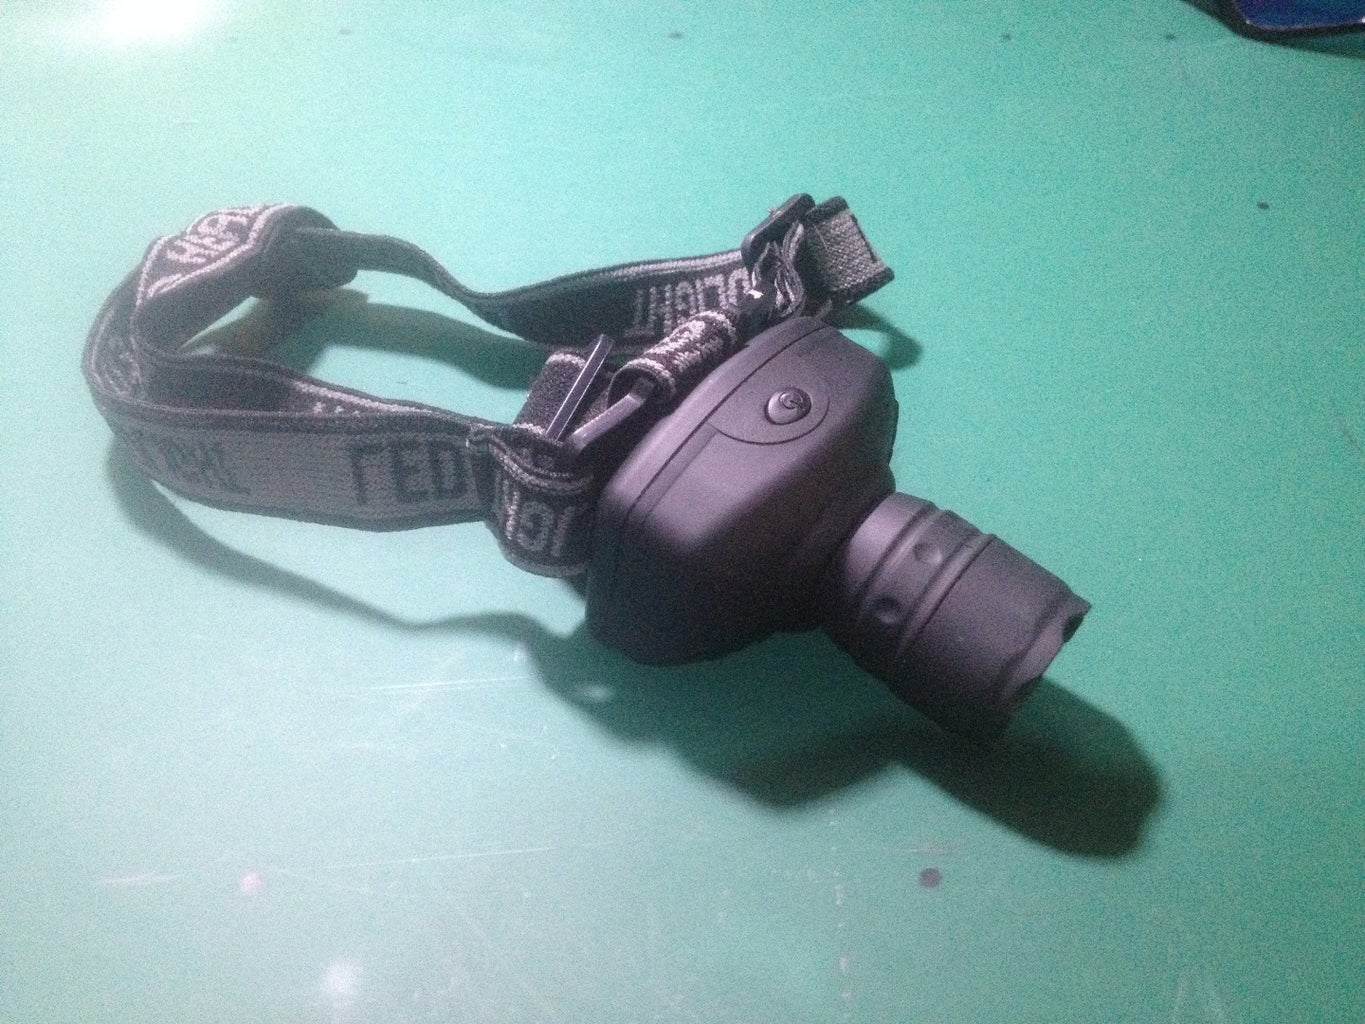 Reassembling the Head Torch